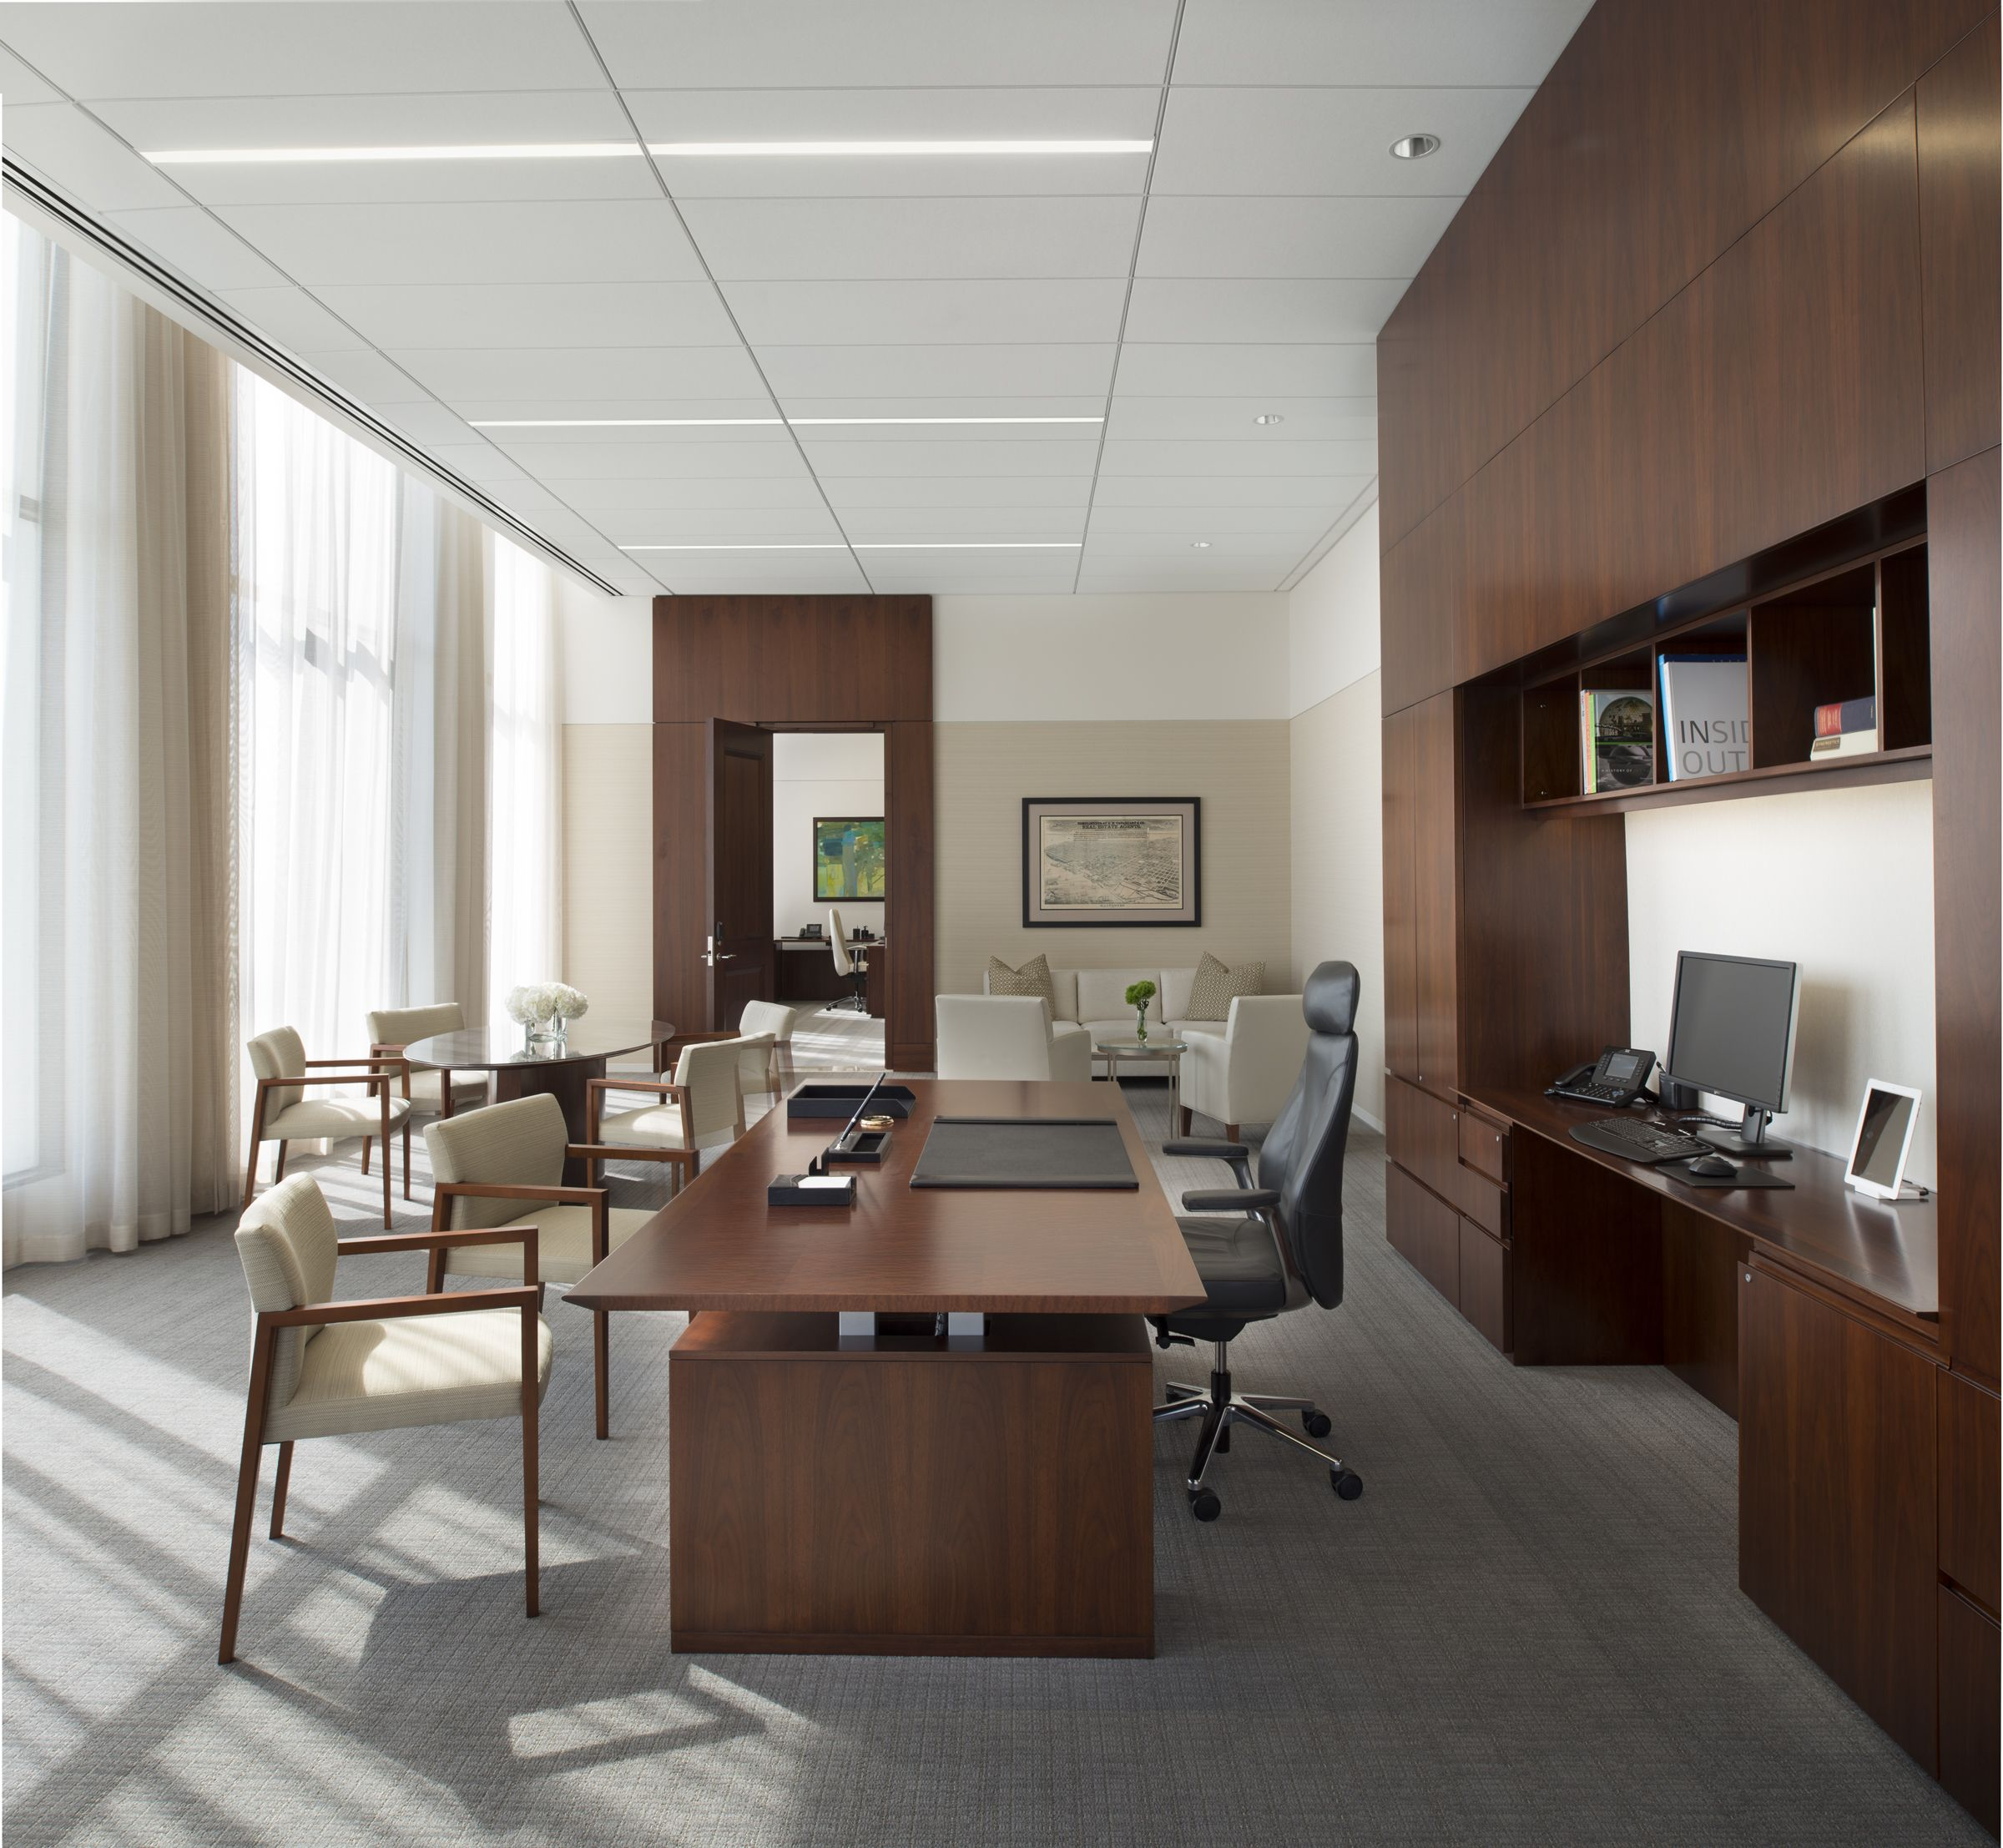 Tewes design nyc executive office seattle interior design - Office Furniture In Sophisticated Cities Has To Be Very Industry Specific Especially When It Comes To Office Furniture In Nyc